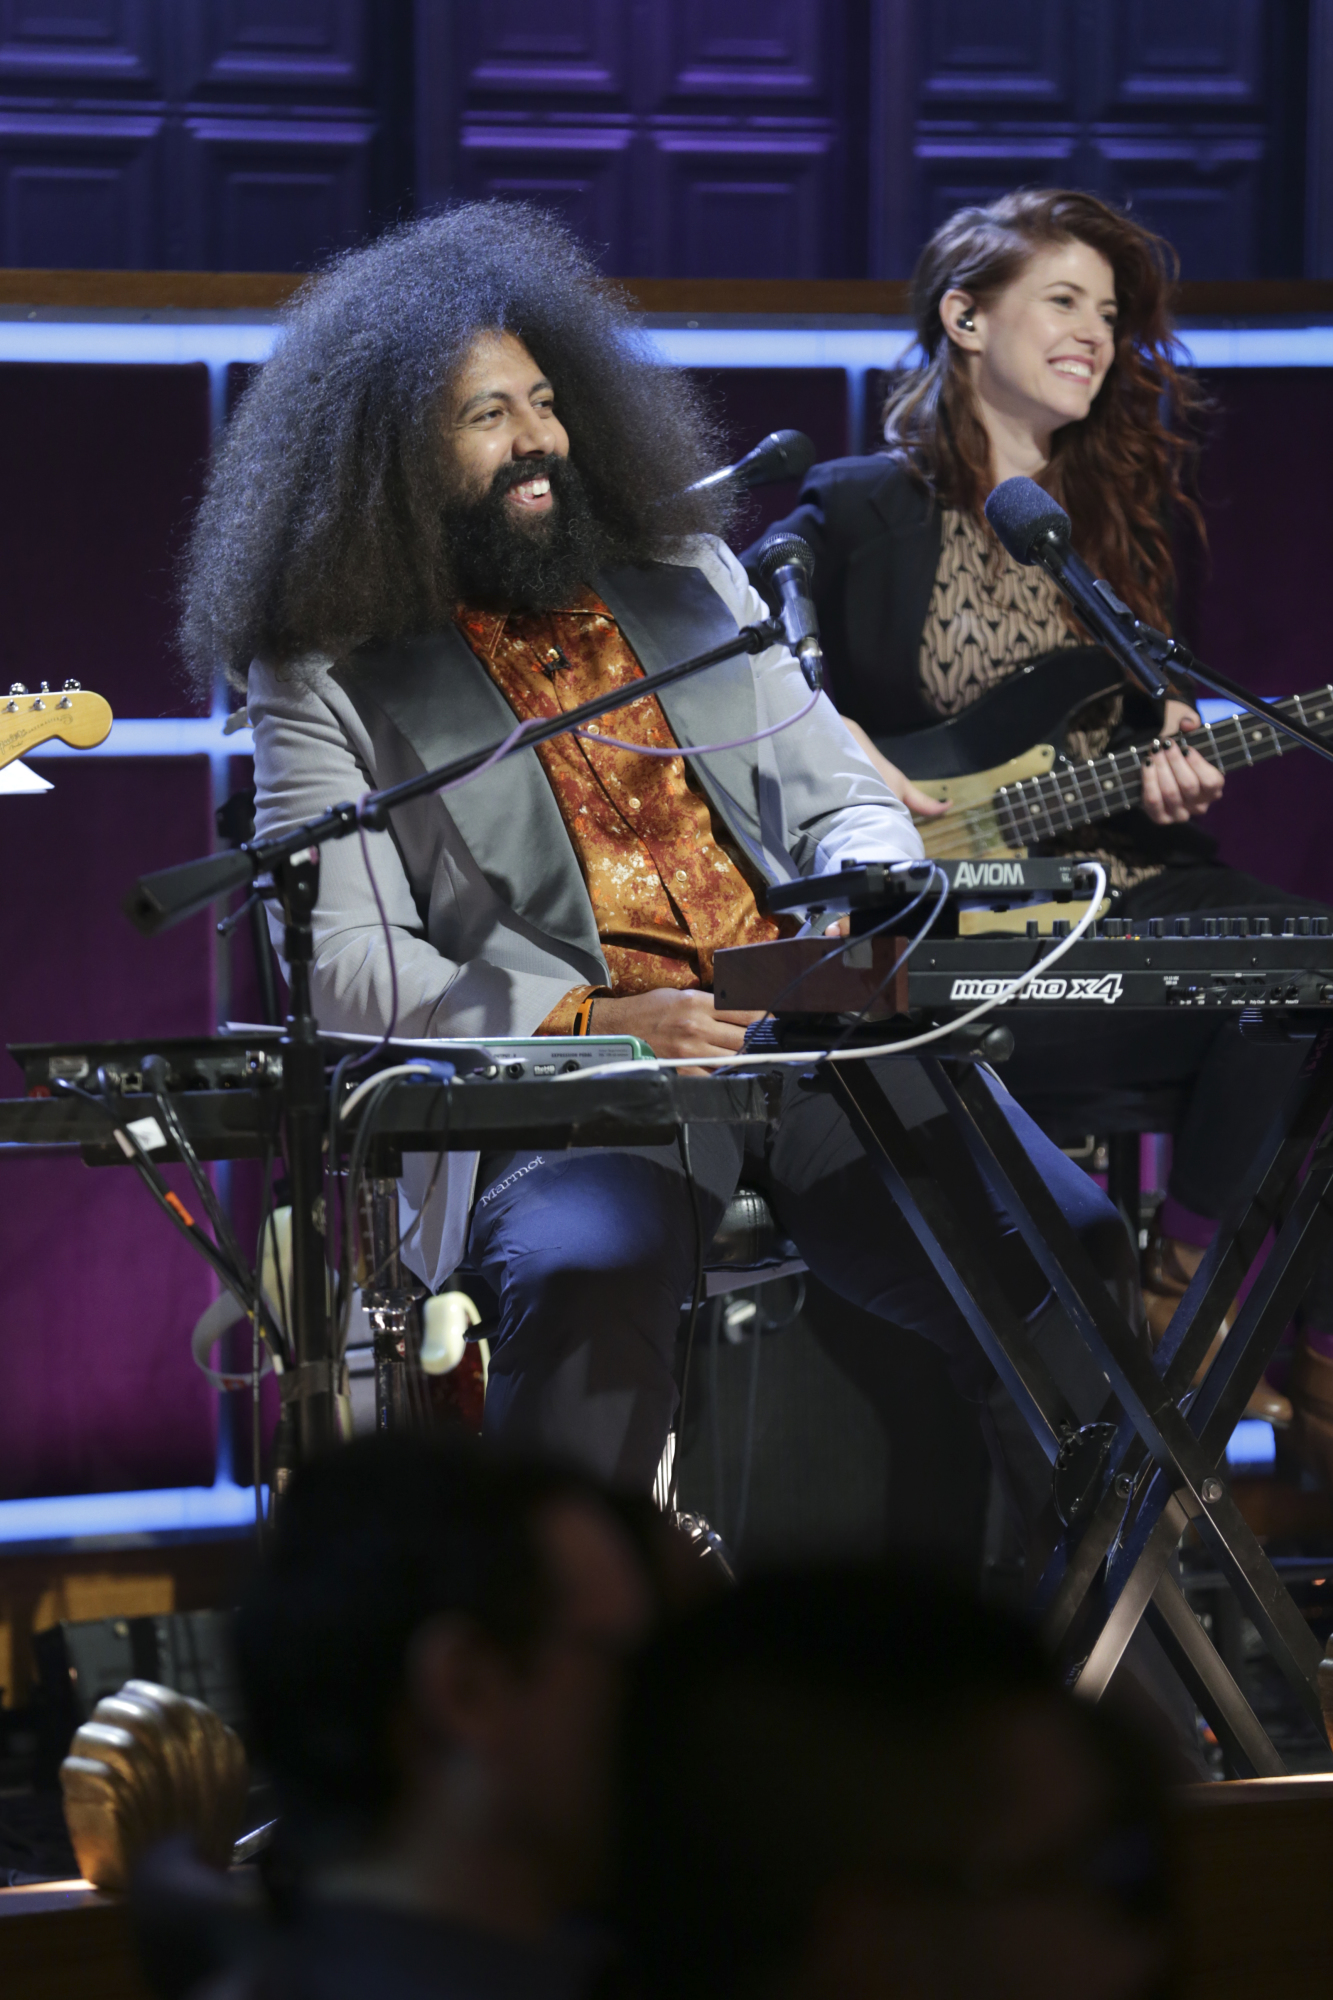 Reggie Watts has a laugh during the show.